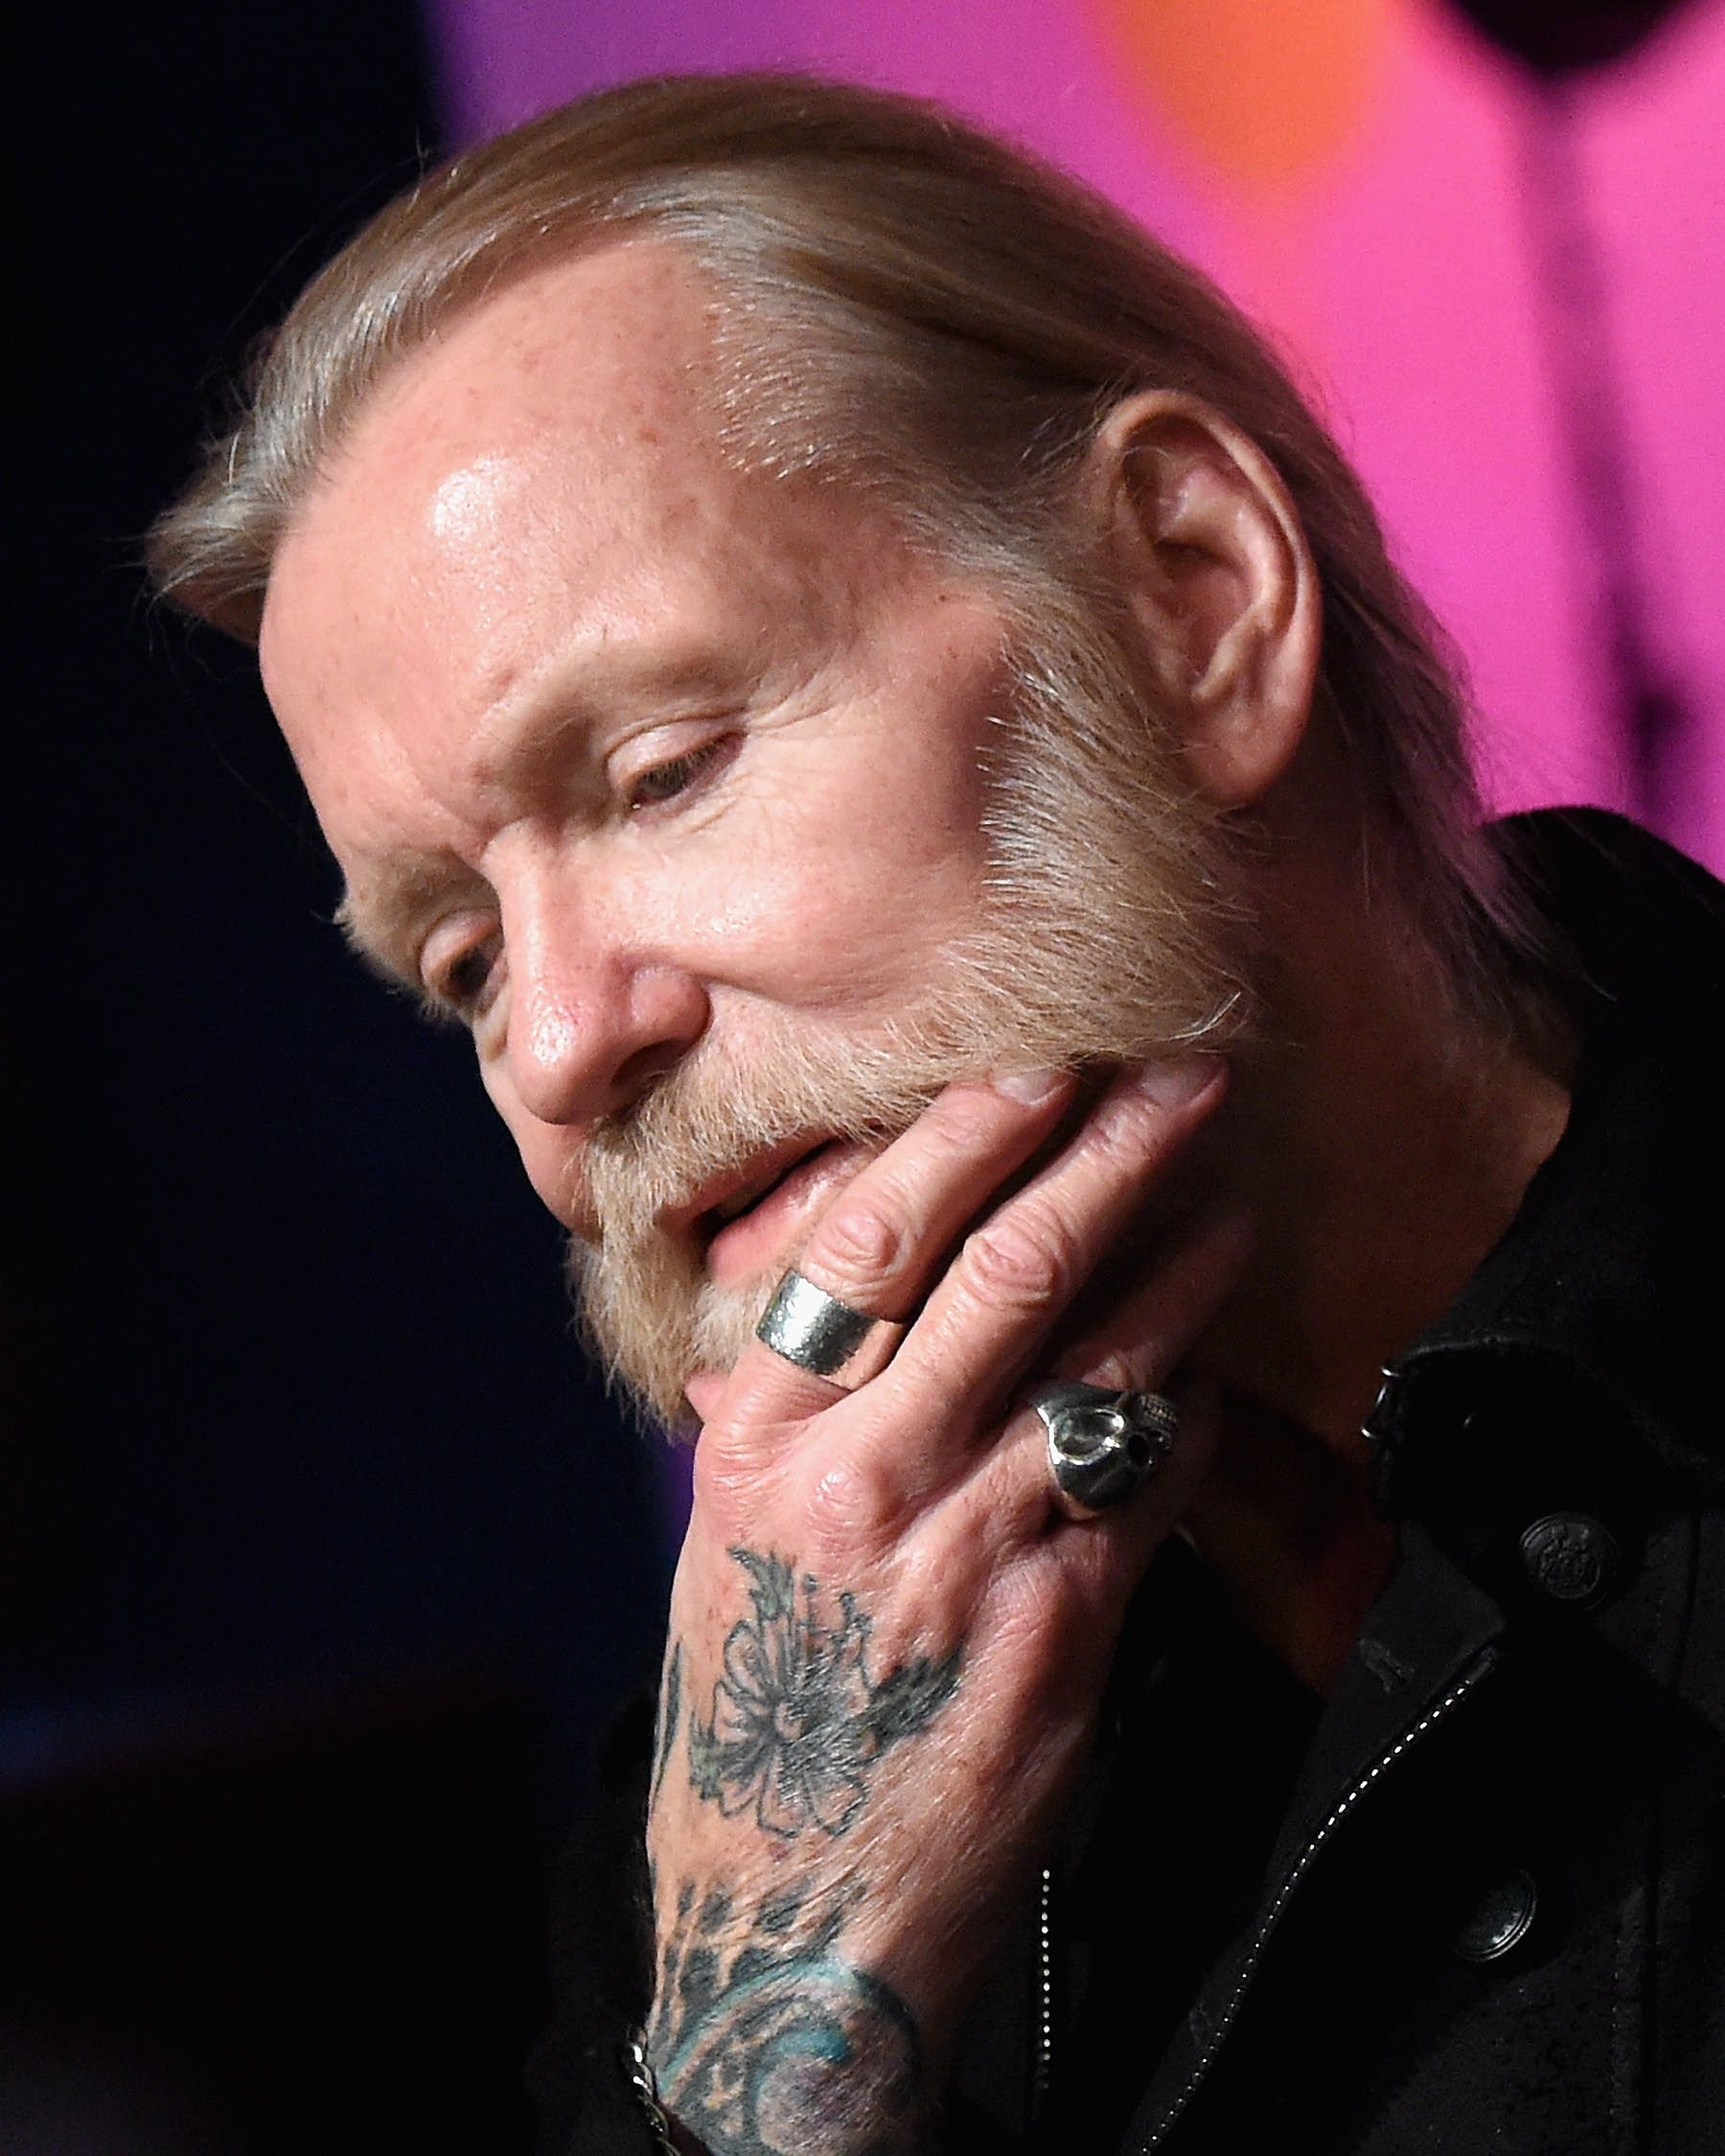 The 73-year old son of father (?) and mother(?) Gregg Allman in 2021 photo. Gregg Allman earned a  million dollar salary - leaving the net worth at  million in 2021